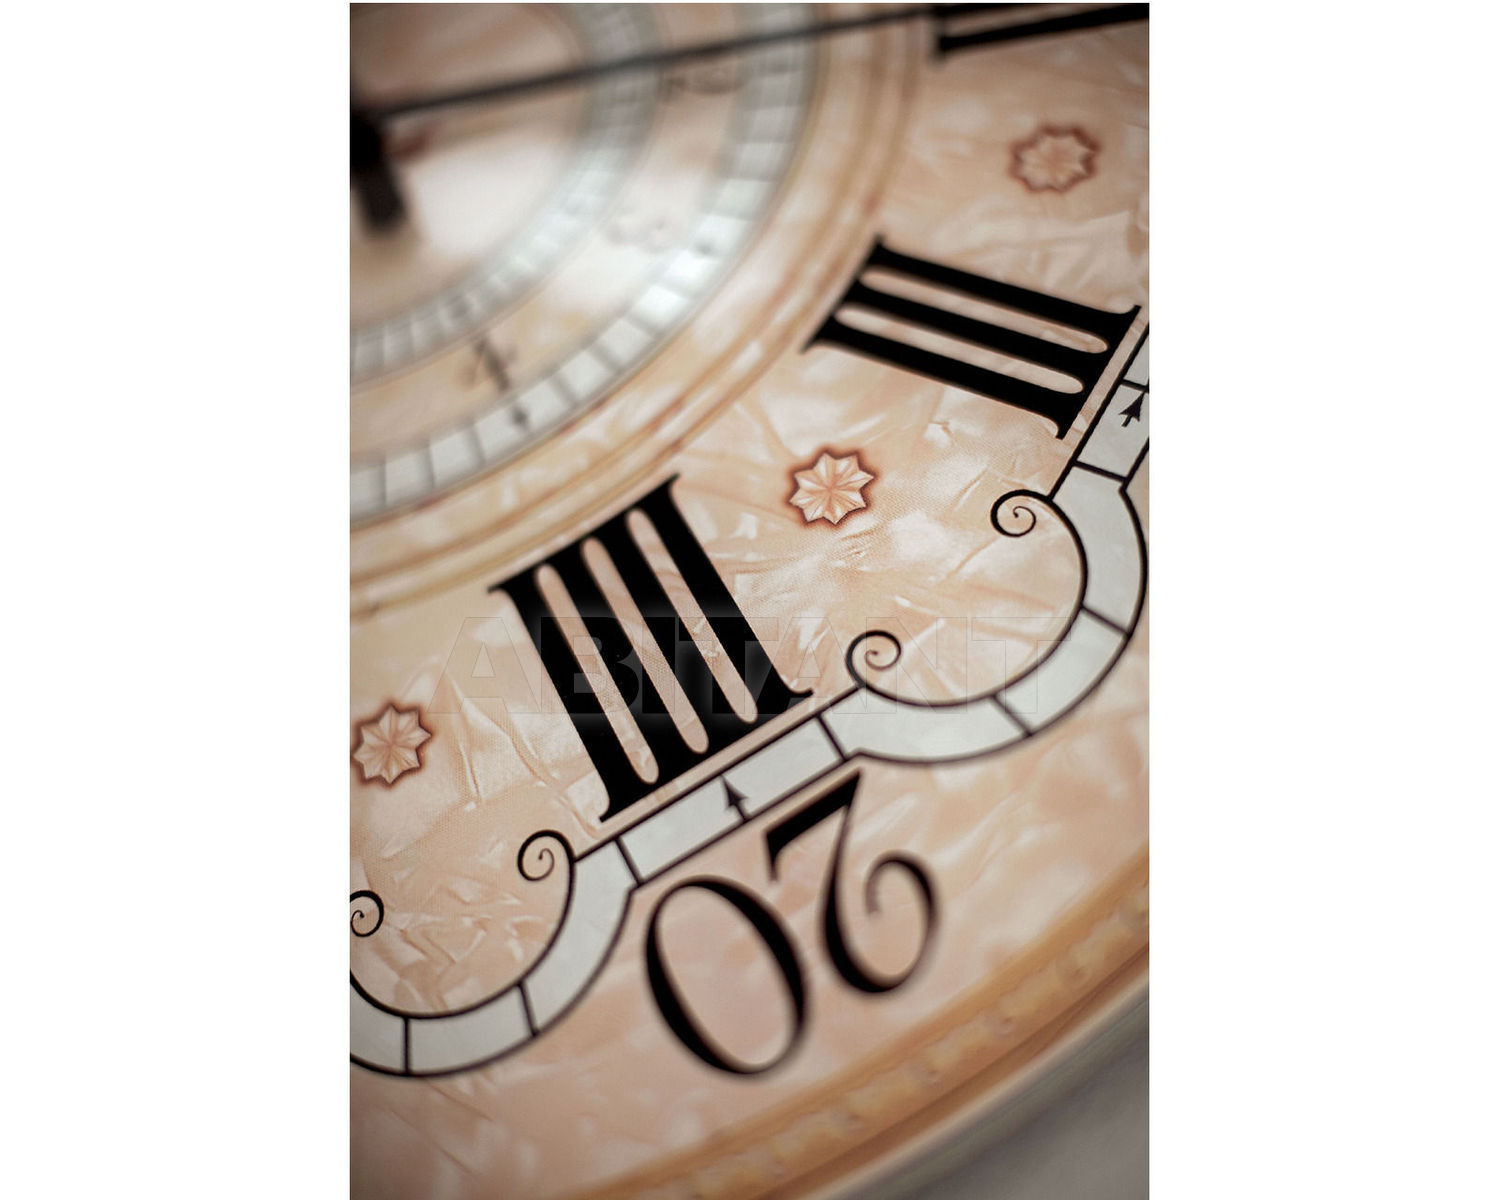 classic kitchens cabinets wall clock terracotta tonin casa 7918 buy оrder оnline 13602